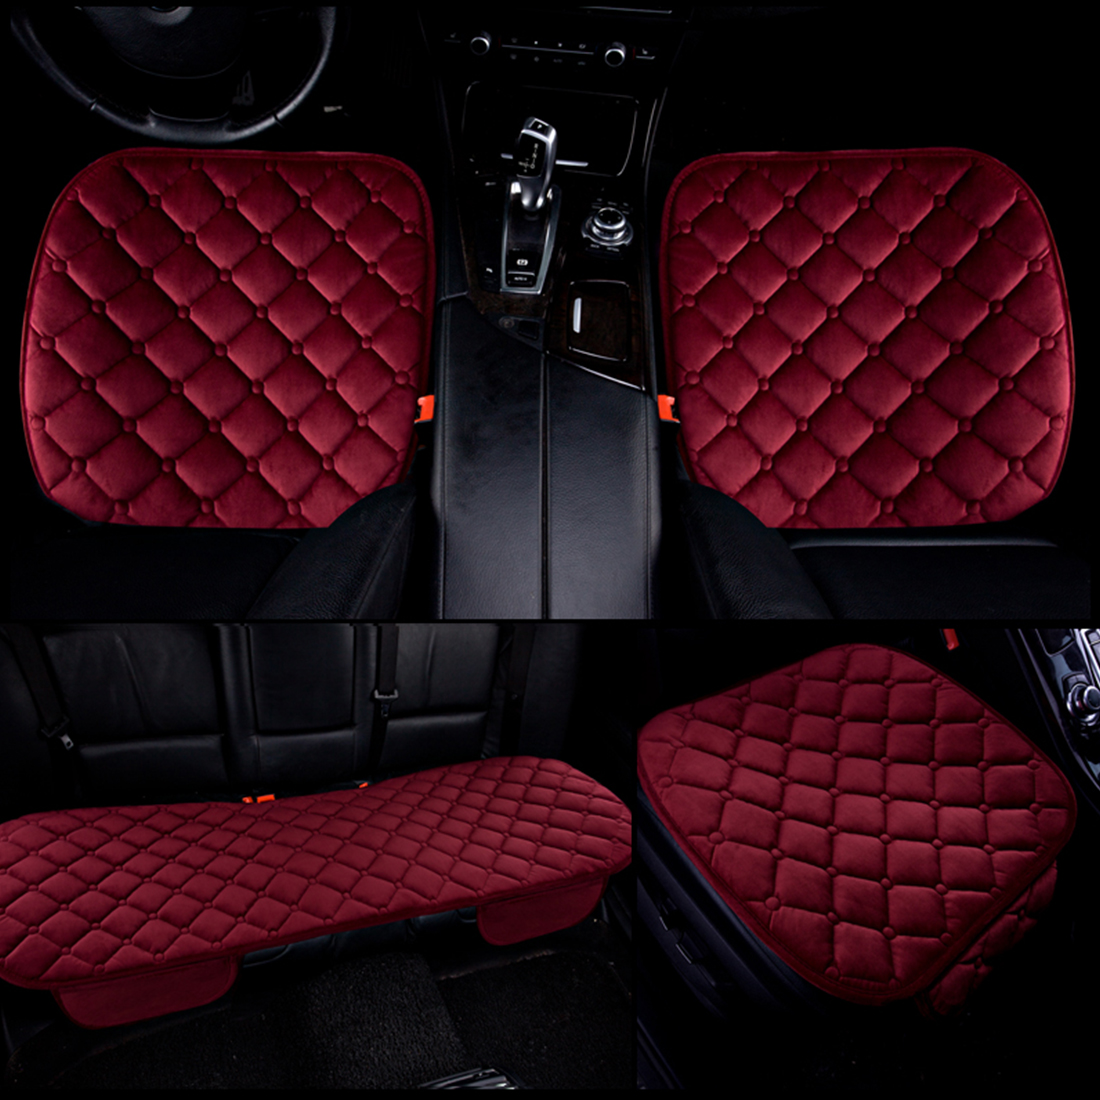 Dewtreetali Winter Warm Velvet Front Rear Car Seat Cover Set Protector Chair Pad Breathable Cushion Auto Seat Covers Accessories dewtreetali winter single car seat covers universal front car seat warm cushion protector pad black gray for vw bmw toyota audi